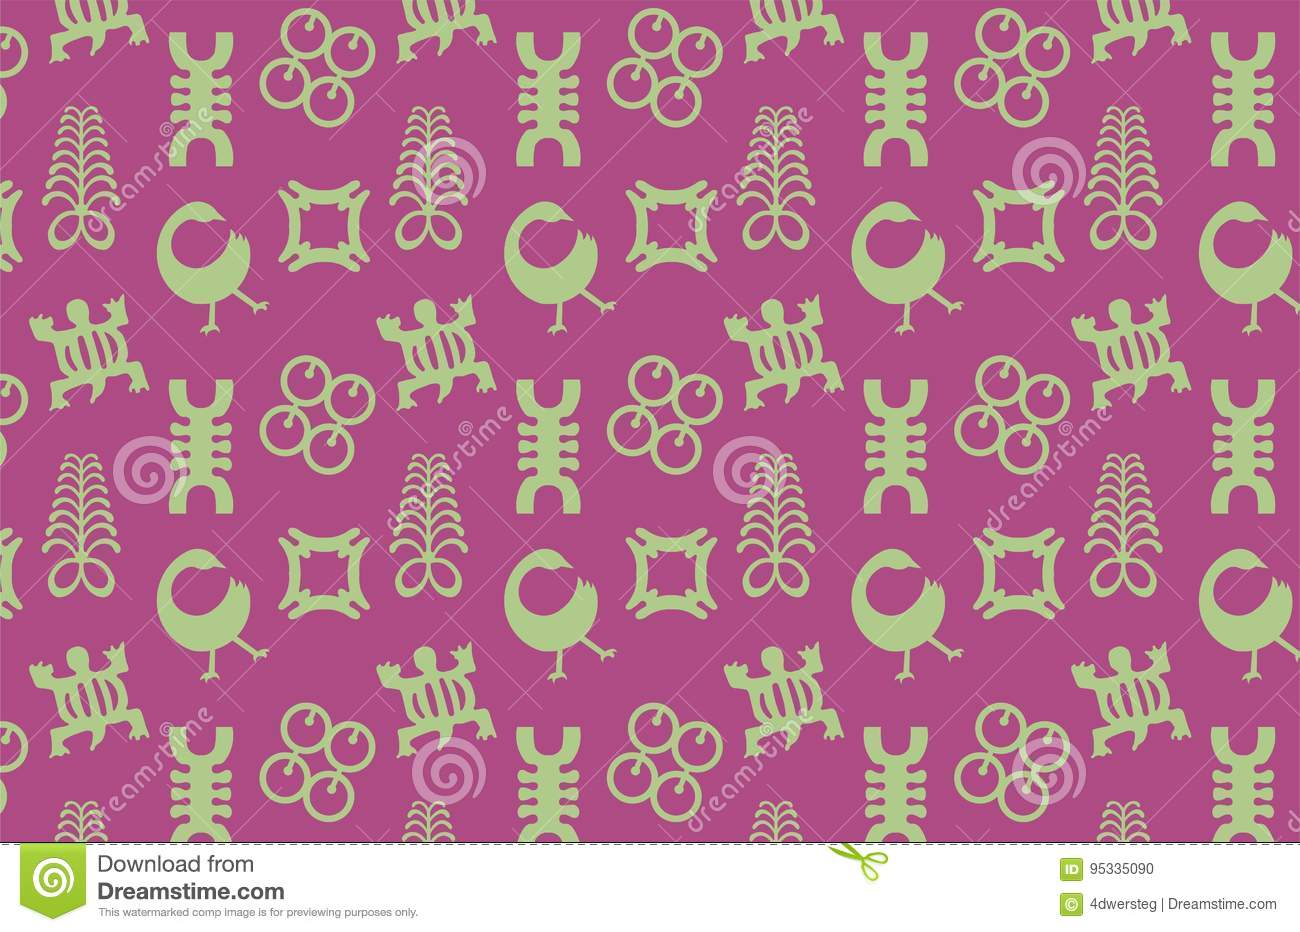 Adinkra symbols pattern stock vector illustration of seamless adinkra symbols pattern biocorpaavc Image collections